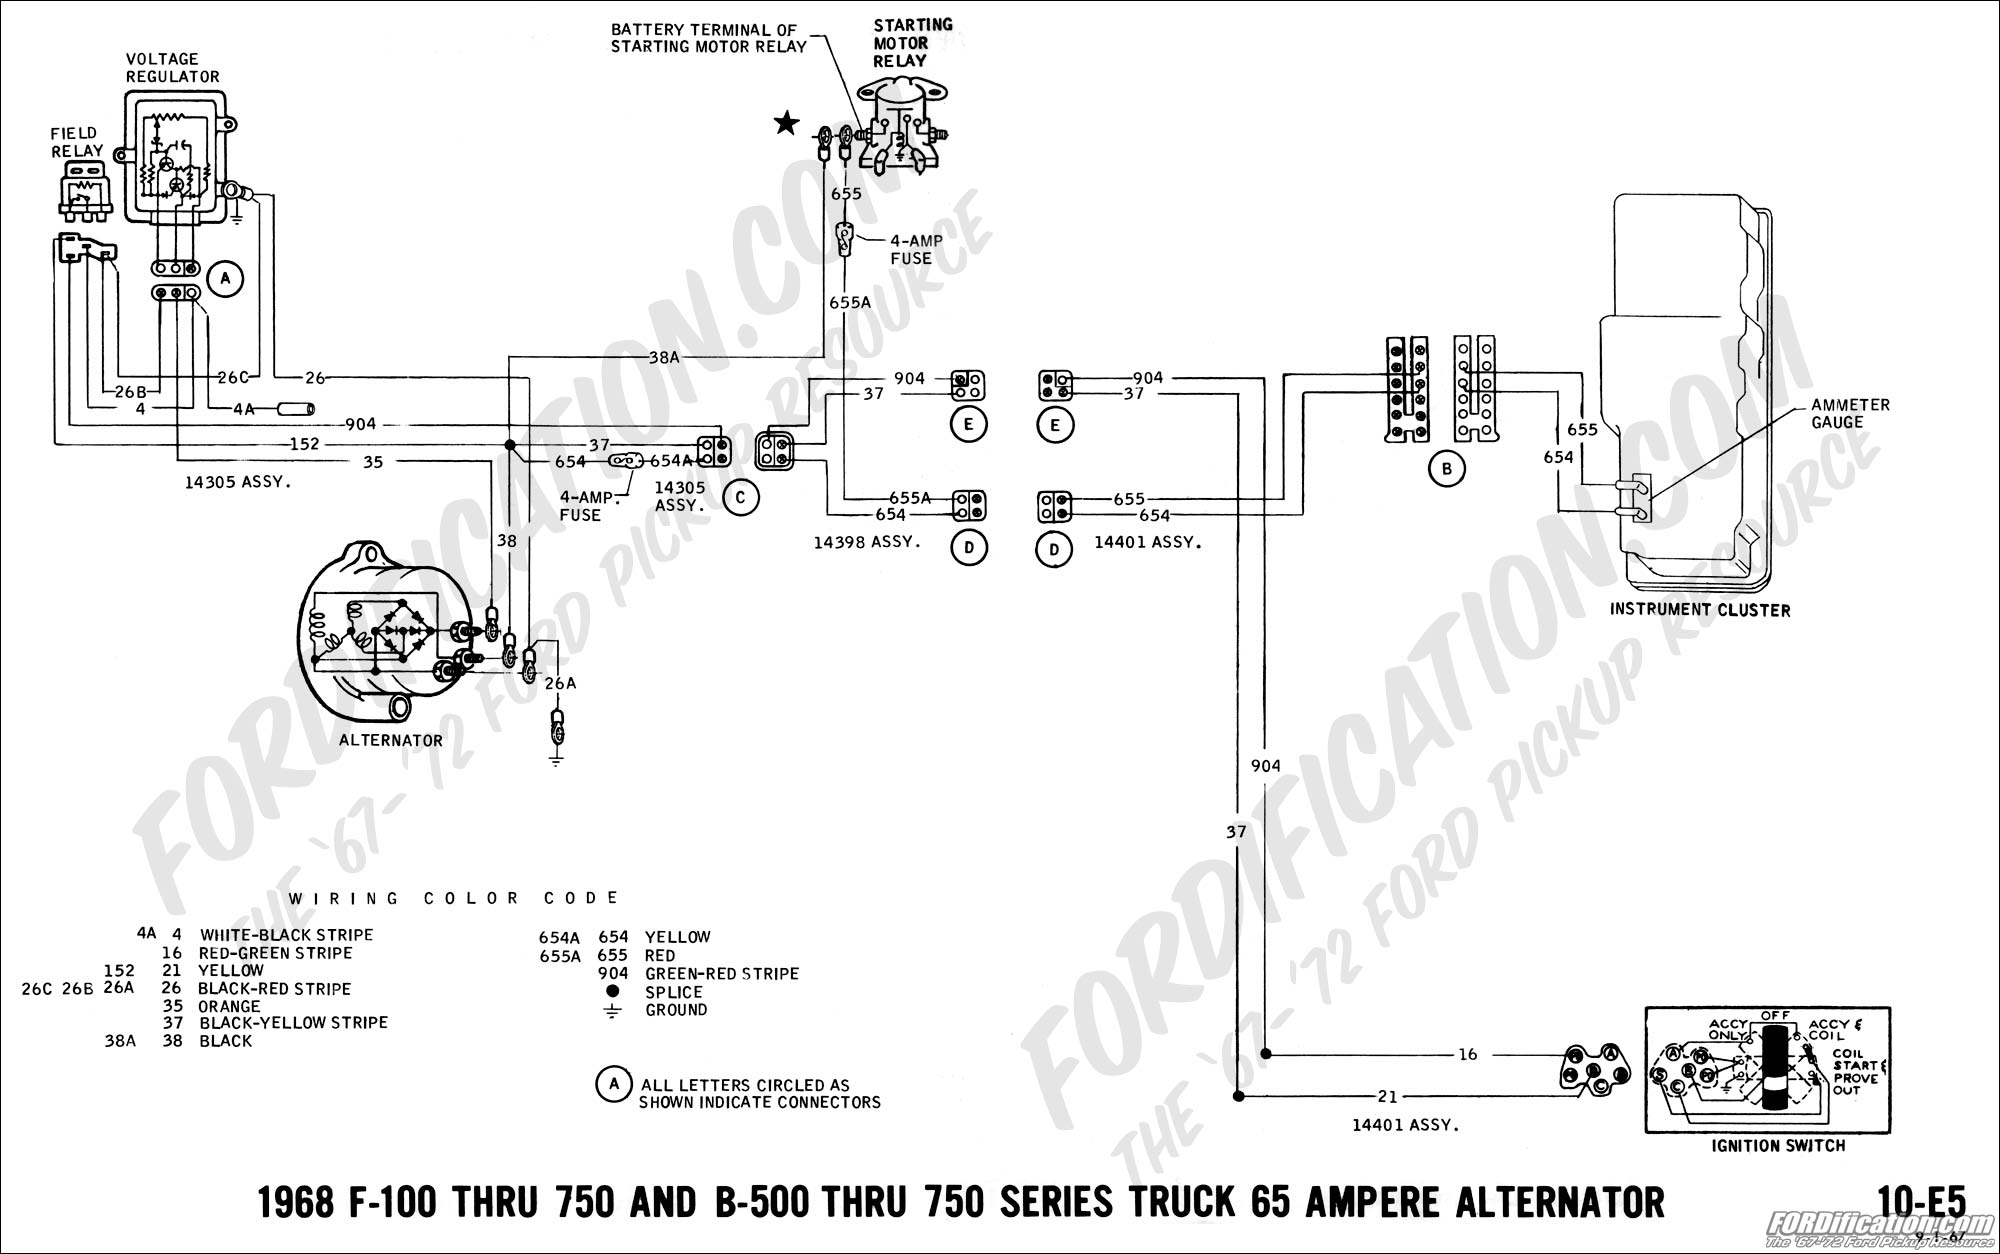 Ford Truck Technical Drawings and Schematics - Section H - Wiring Diagrams | Ford F 350 Alternator Wiring Diagram |  | FORDification.com